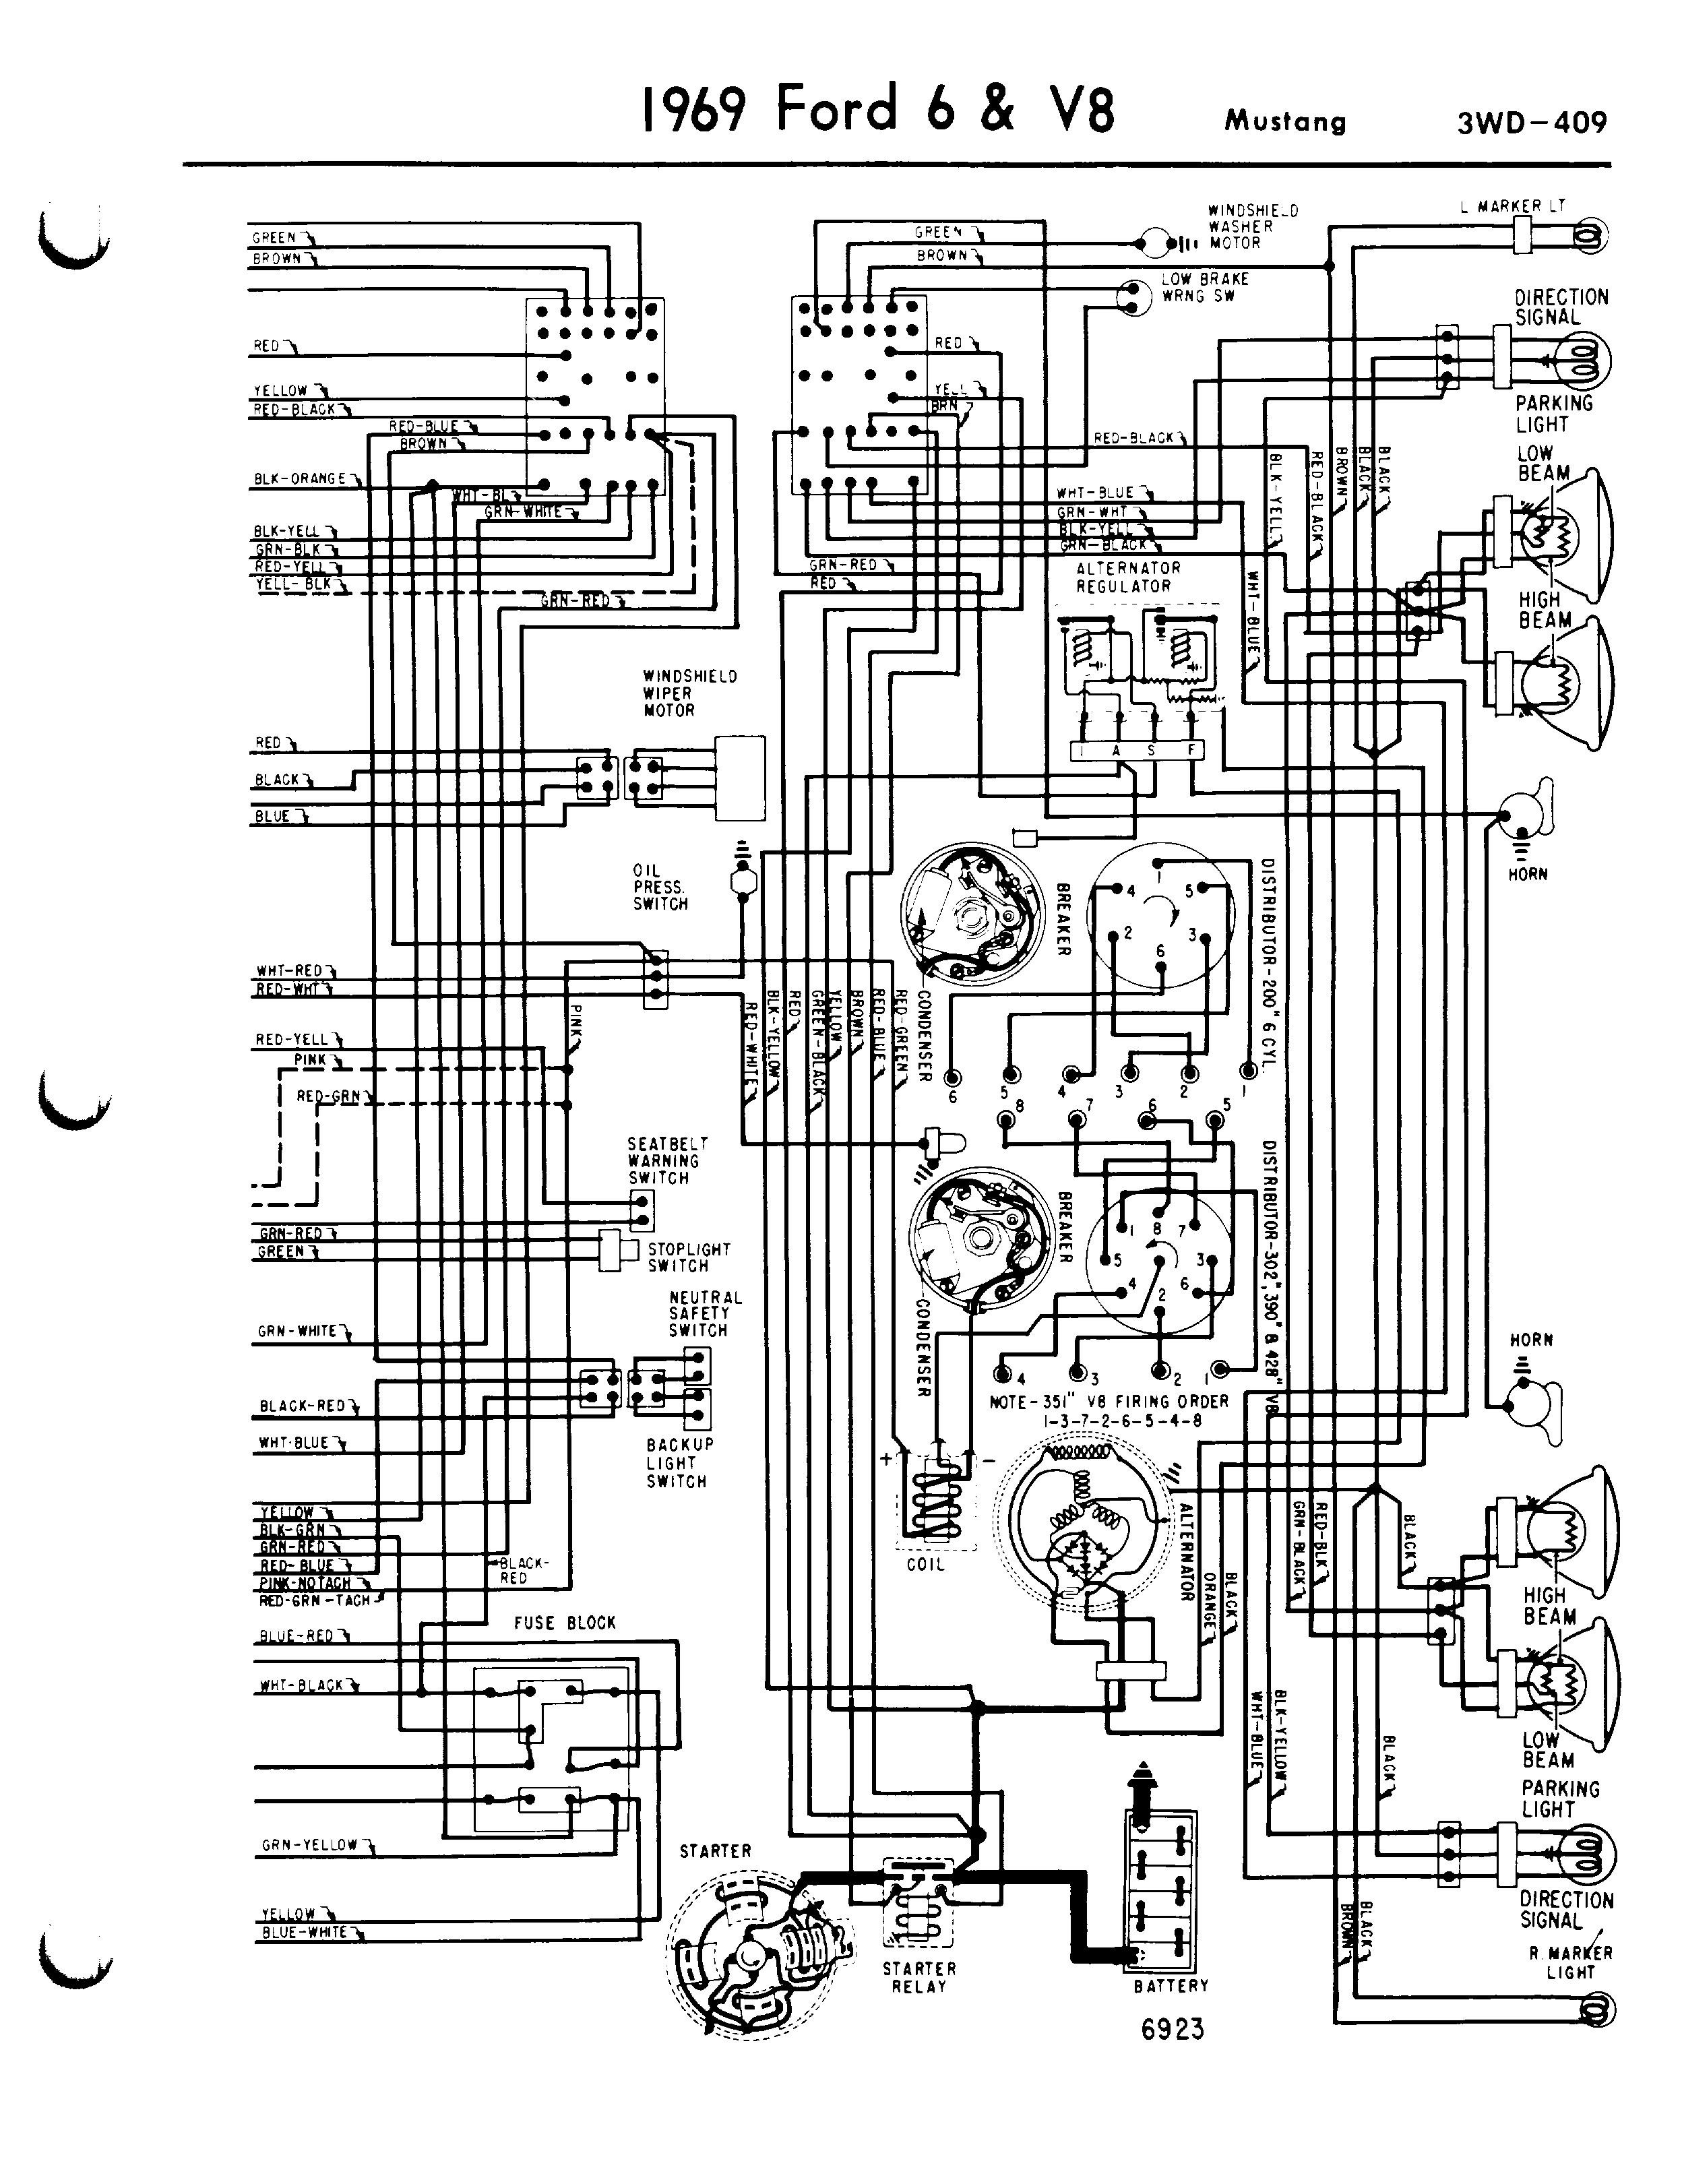 1988 Mustang Engine Diagram Wiring Library Schematics 2000 1966 Ford 6 V8 3wd 235 Schematic For Alluring